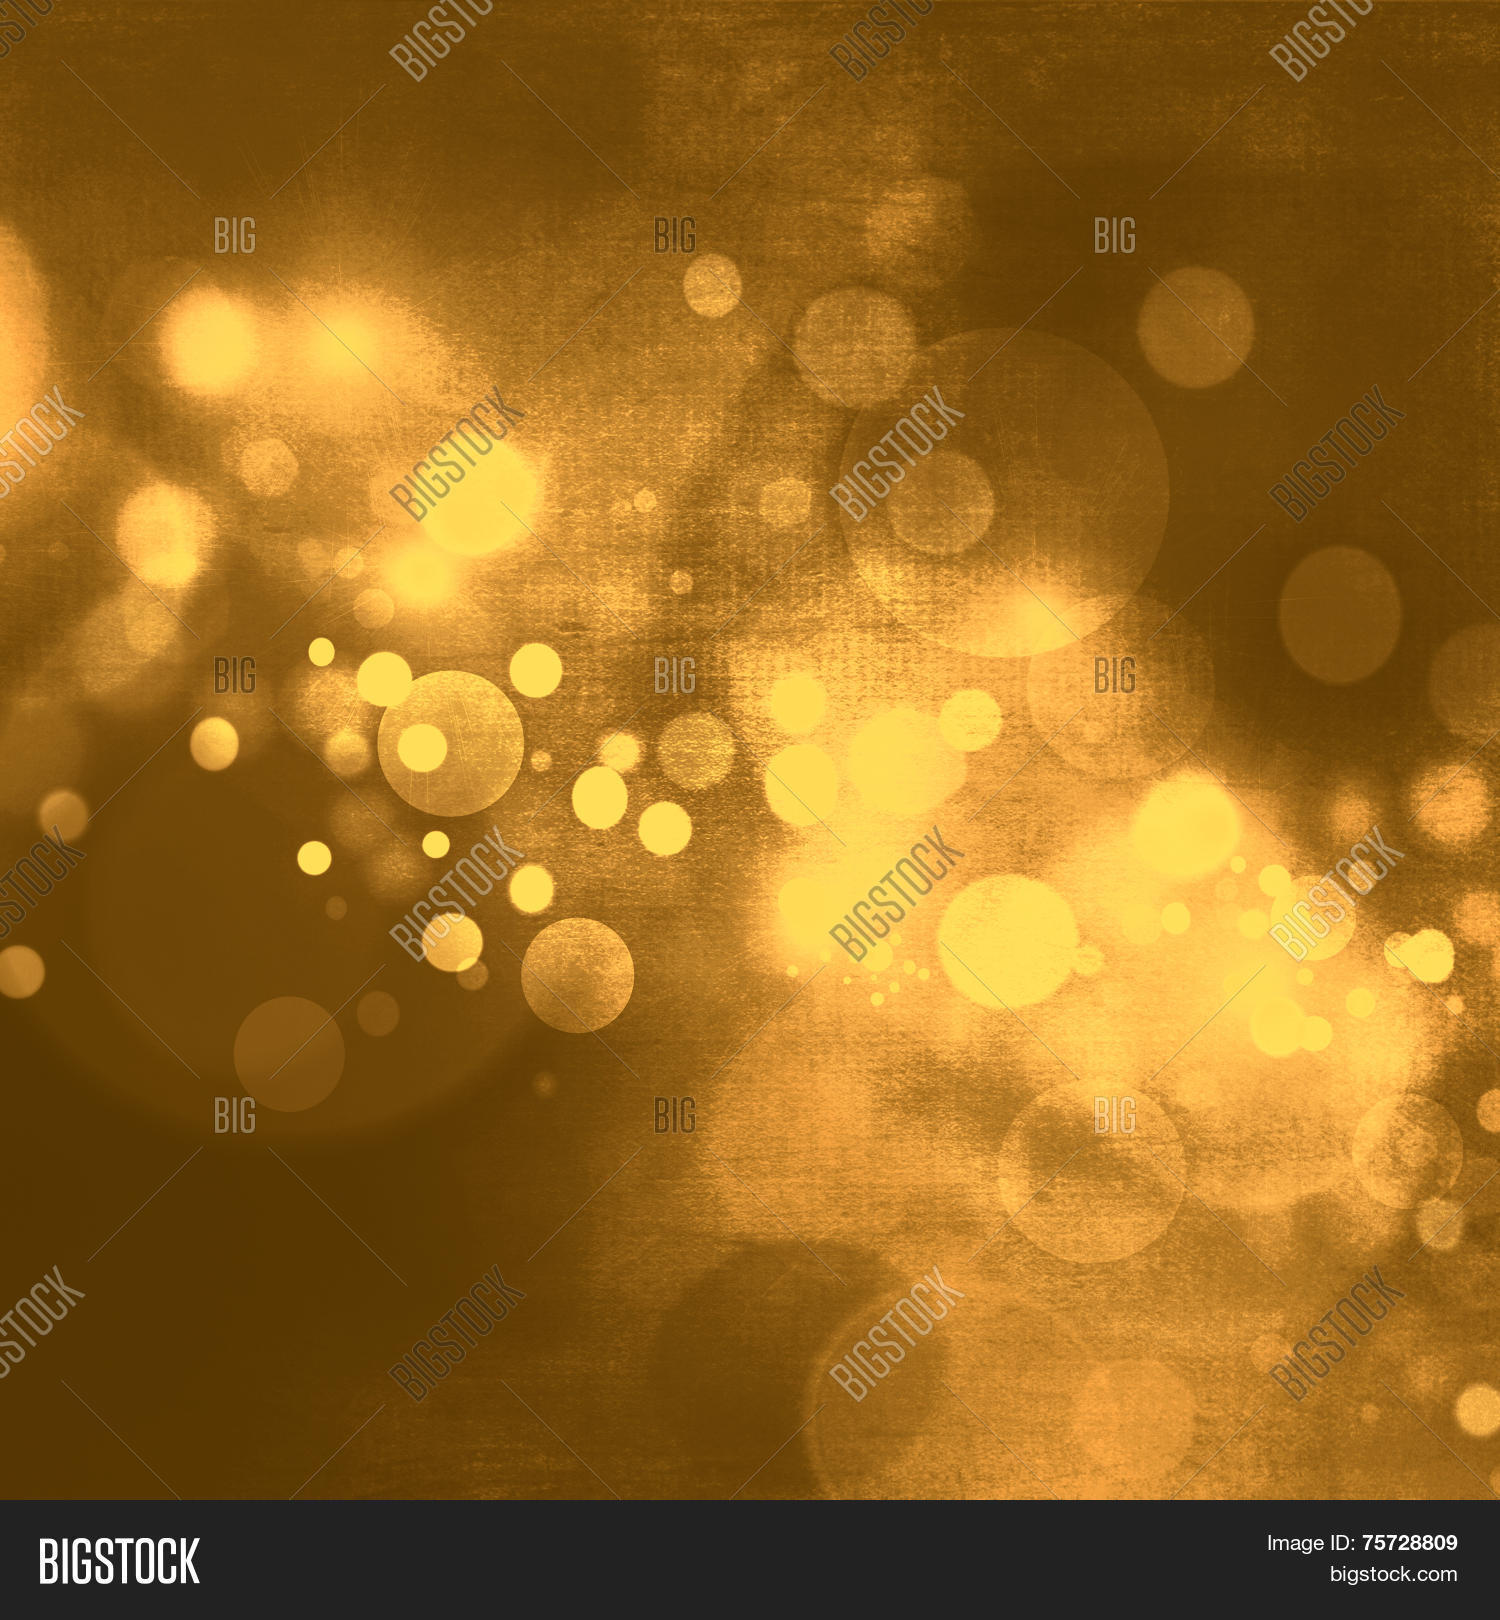 Abstract Gold Background Luxury Image Amp Photo Bigstock